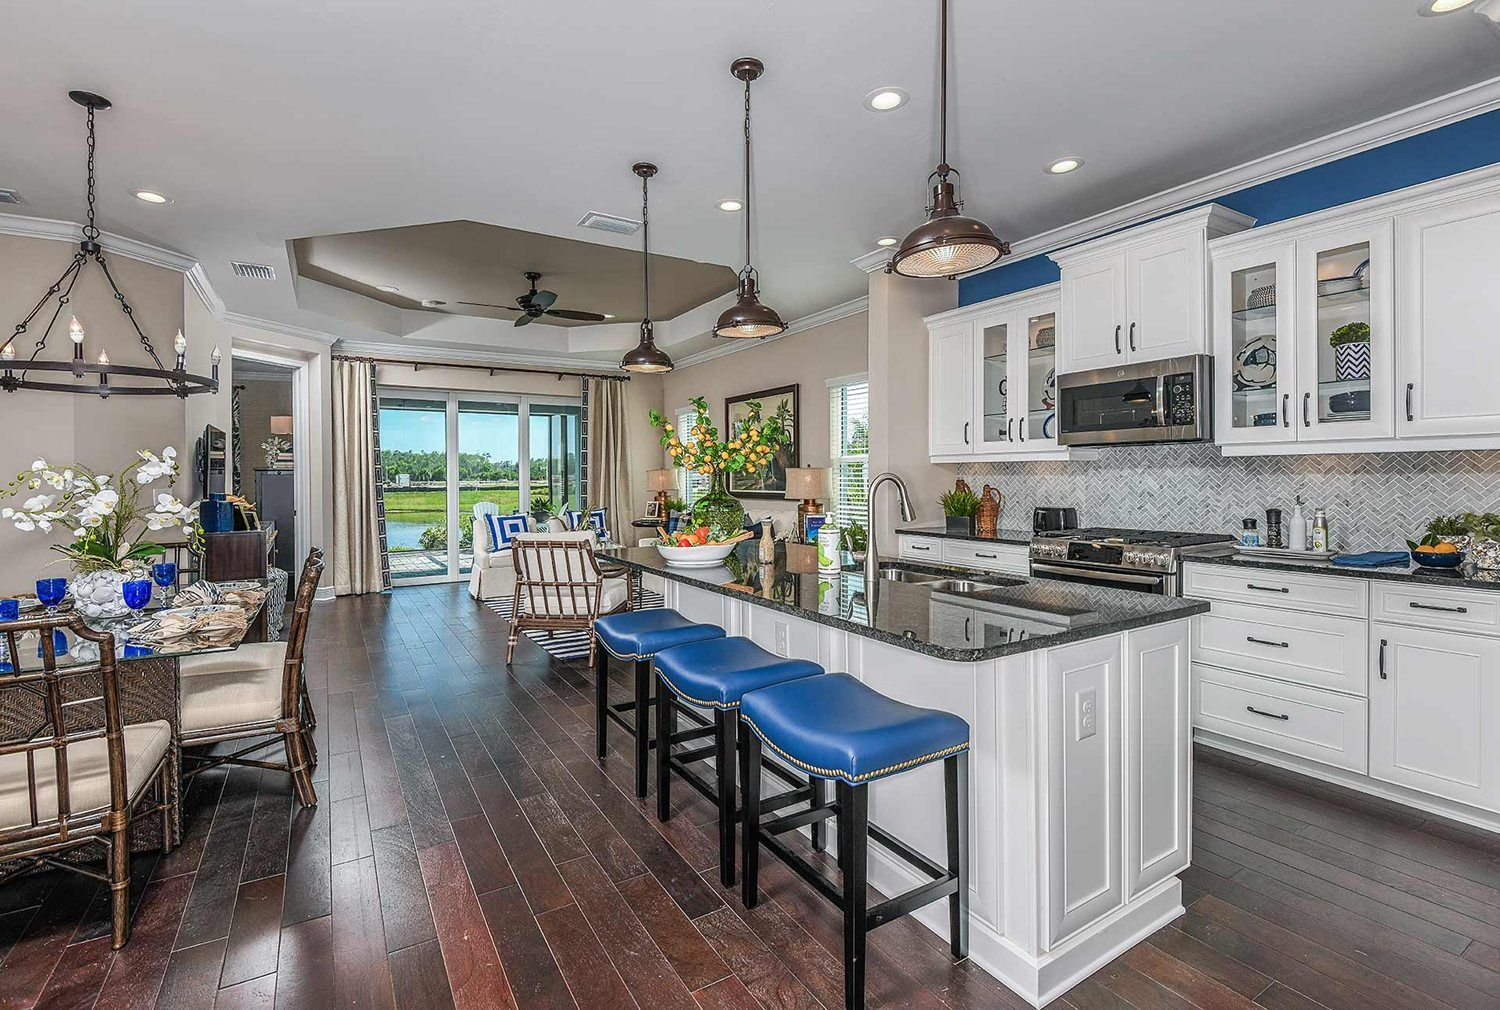 Living Area featured in the Tidewinds By Neal Communities in Naples, FL